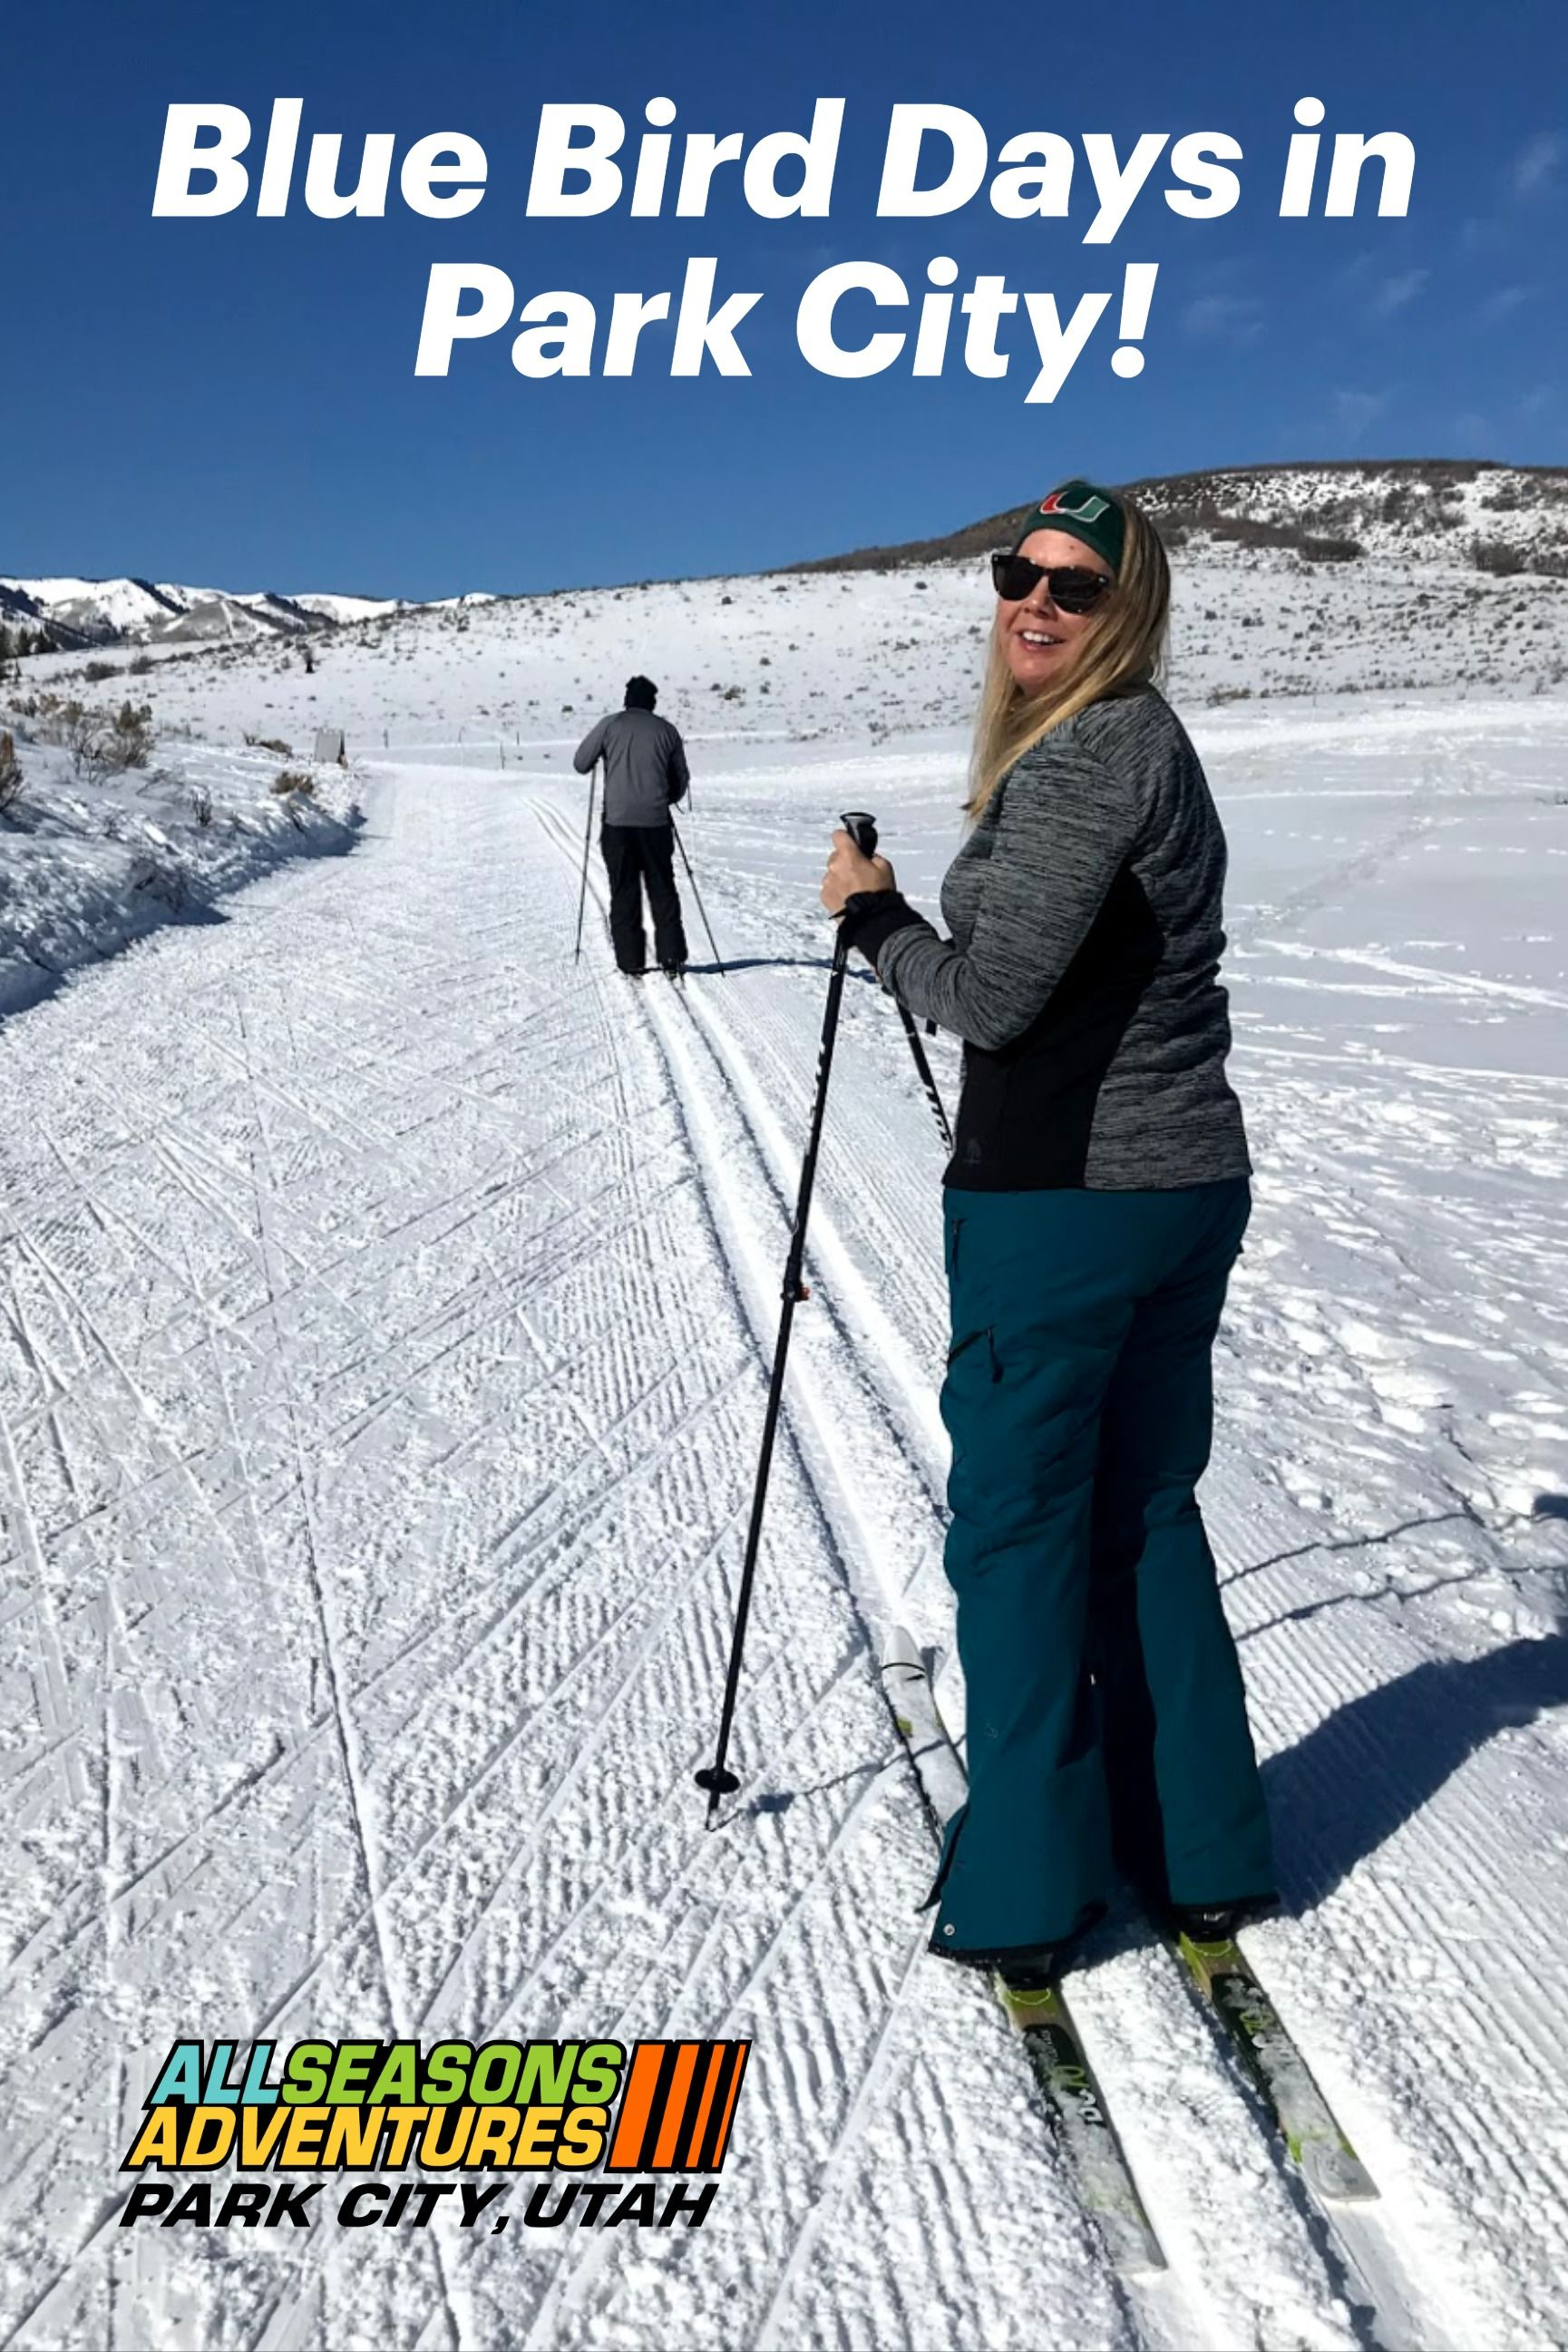 Enjoy Your Spring Break In Park City With A Guided Adventure Cross Country Skiing Snowshoeing Trapshooting Or Fly Fishing In 2020 Park City Park City Utah Ski Park